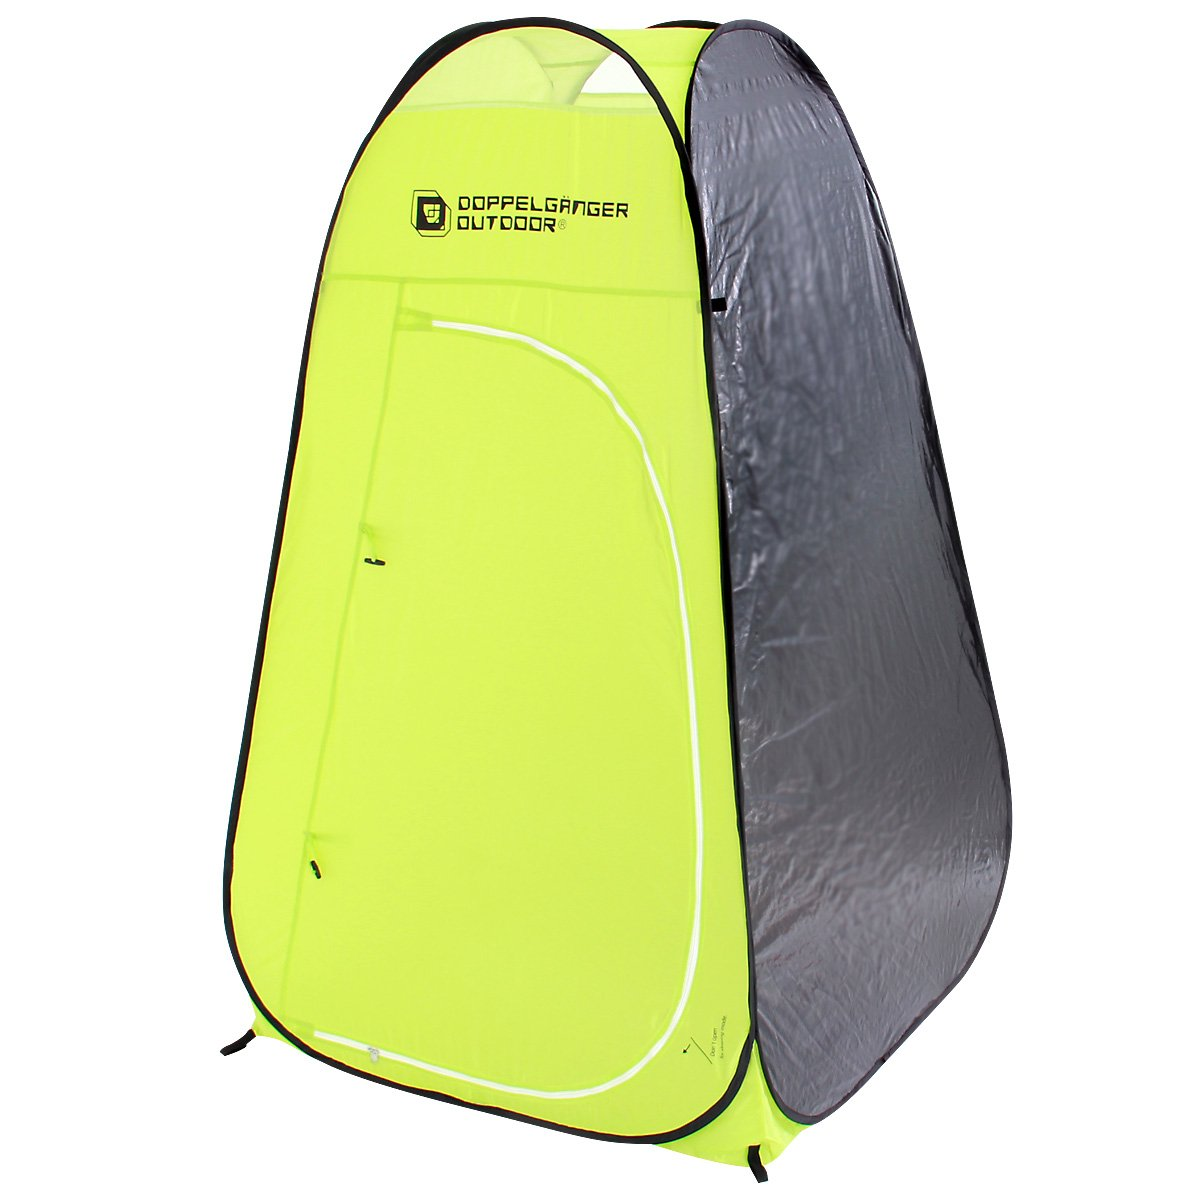 DOPPELGANGER OUTDOOR(R)Nap & Changing Tent T1-241